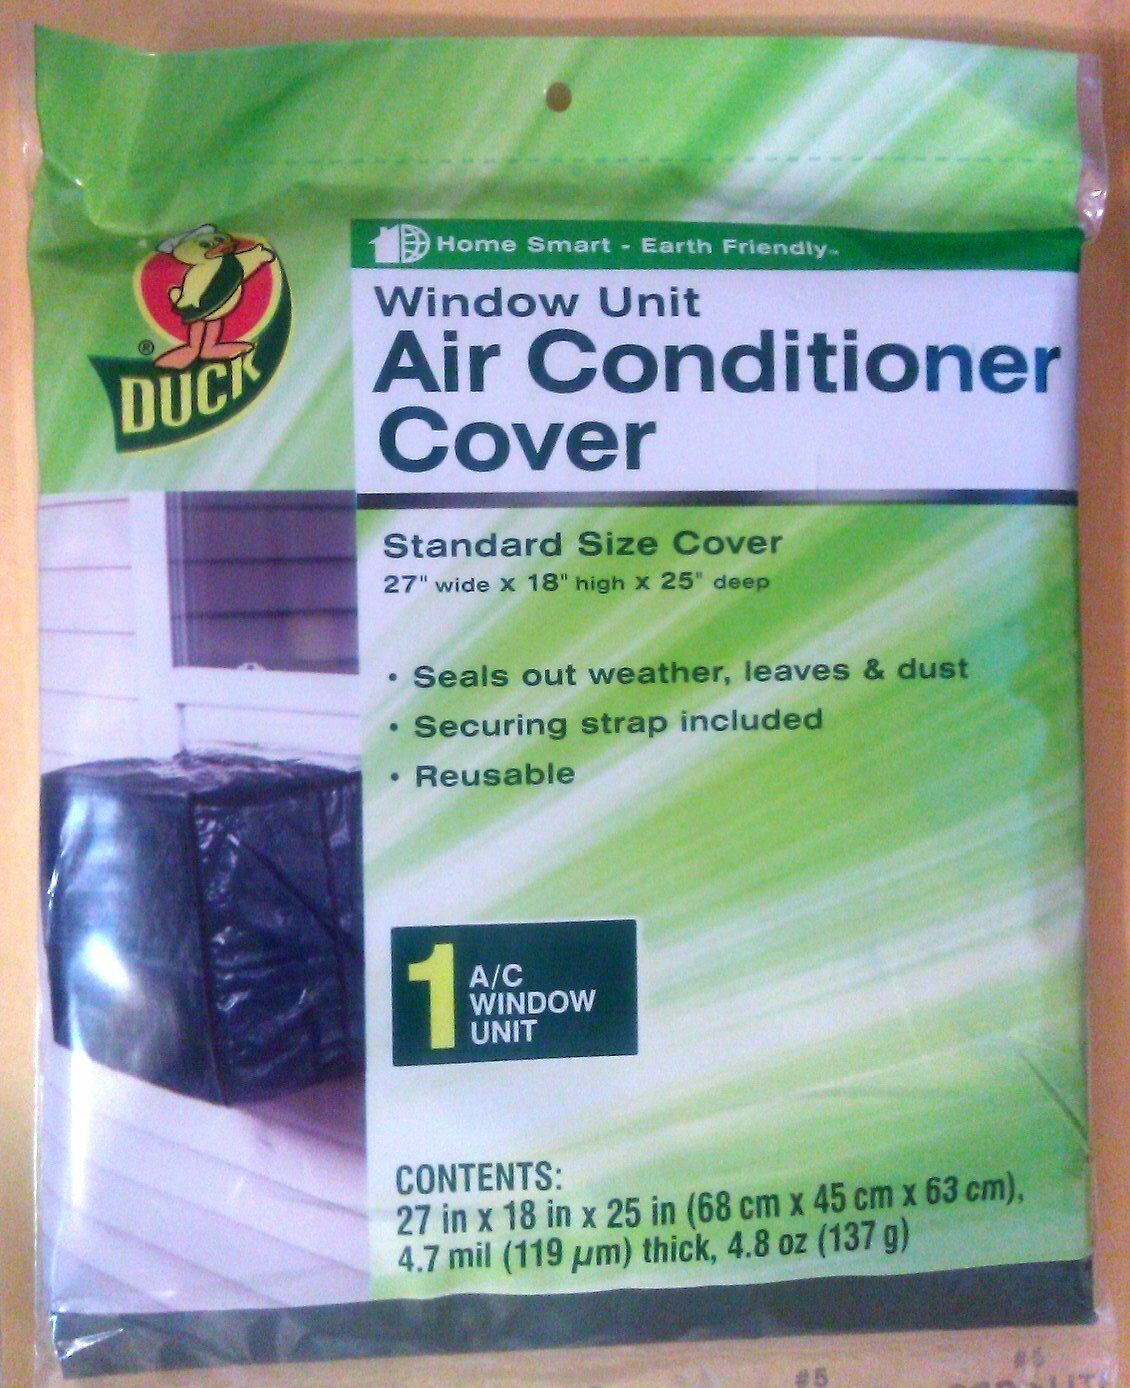 """Duck Window Air Conditioner Cover 27""""w X 18""""h X 25"""" d - NEW-"""